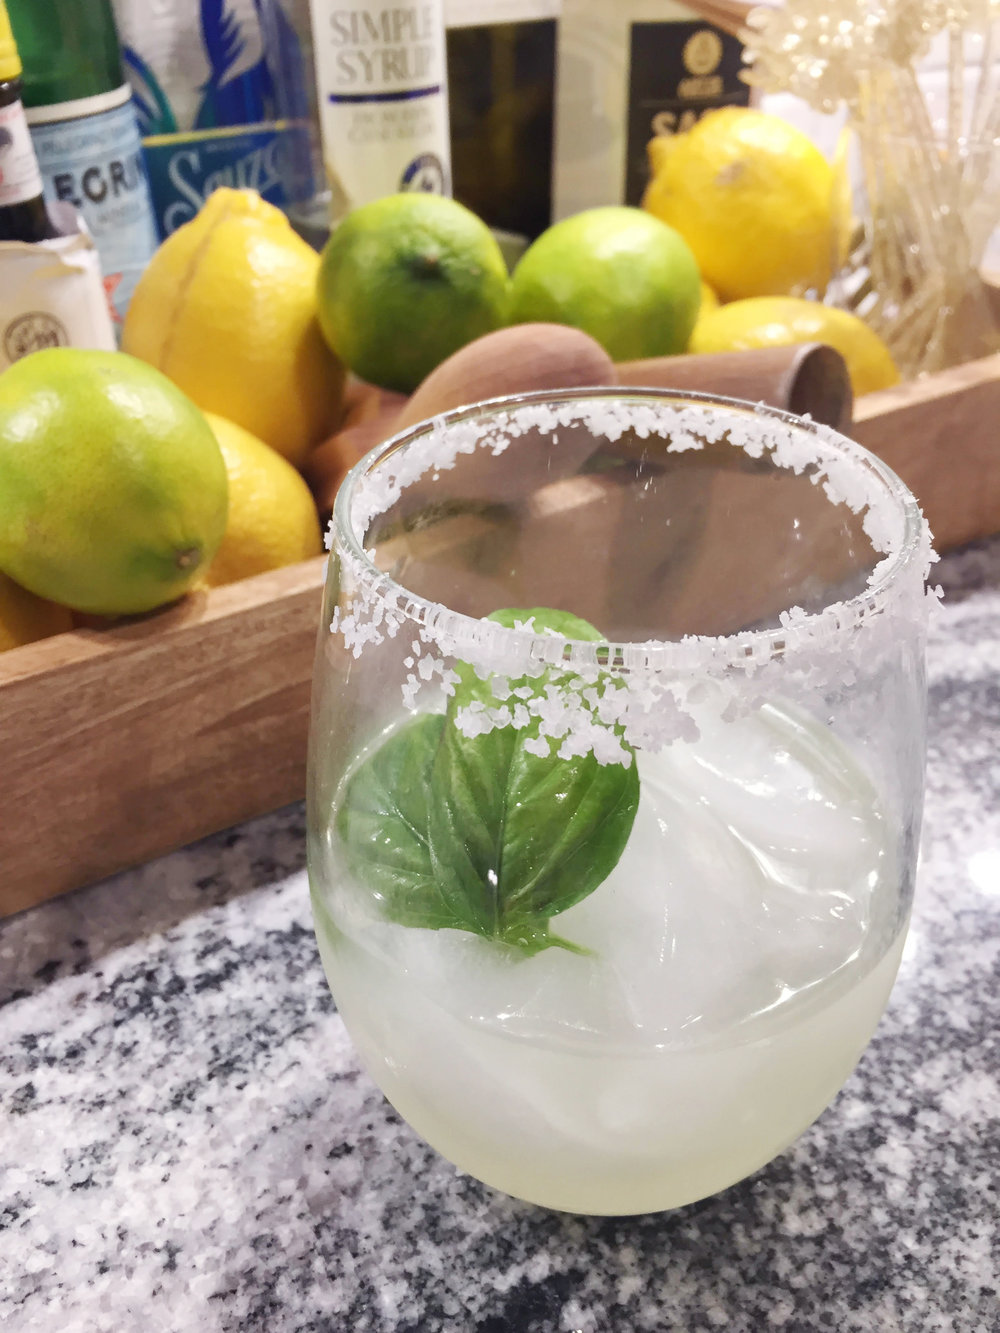 The Spirited Sprout's Easy Basil Margarita